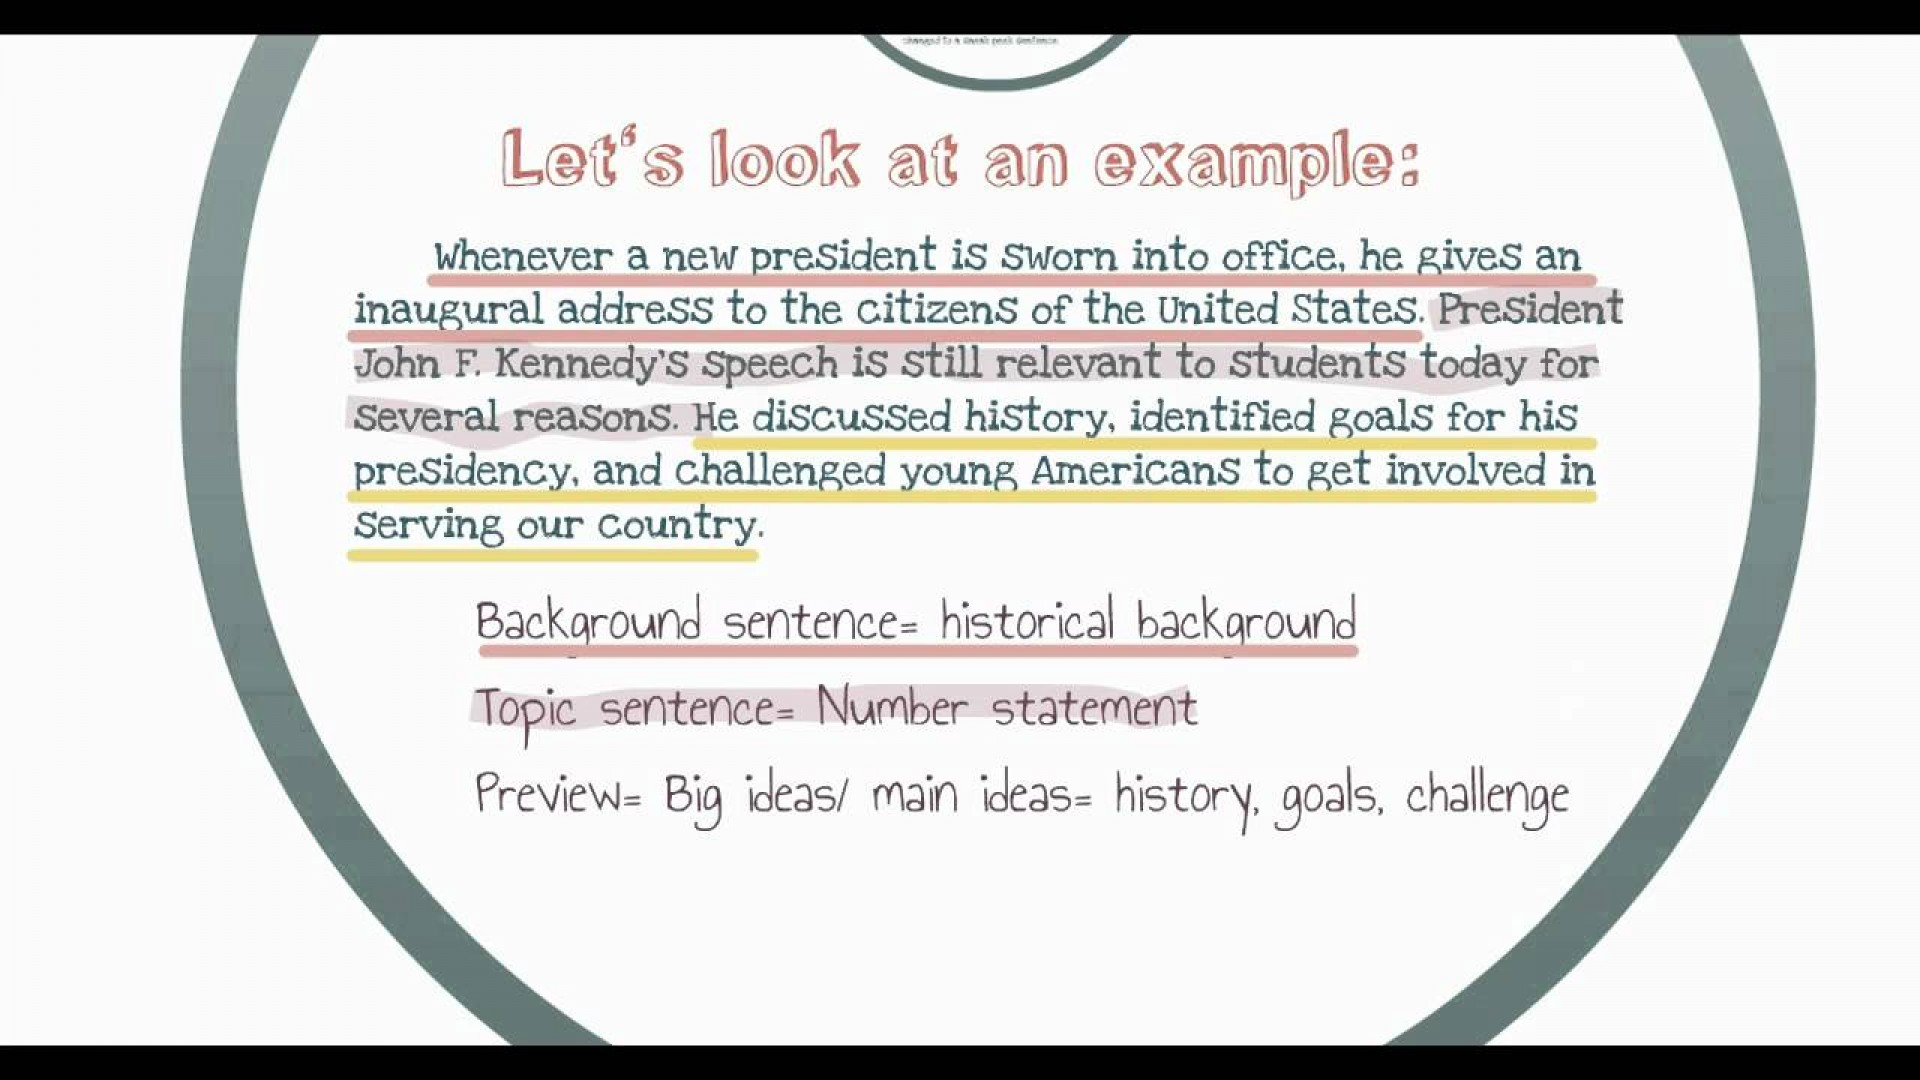 001 Essay Example How To Write An Introduction Paragraph For Best Argumentative About A Book Ppt 1920